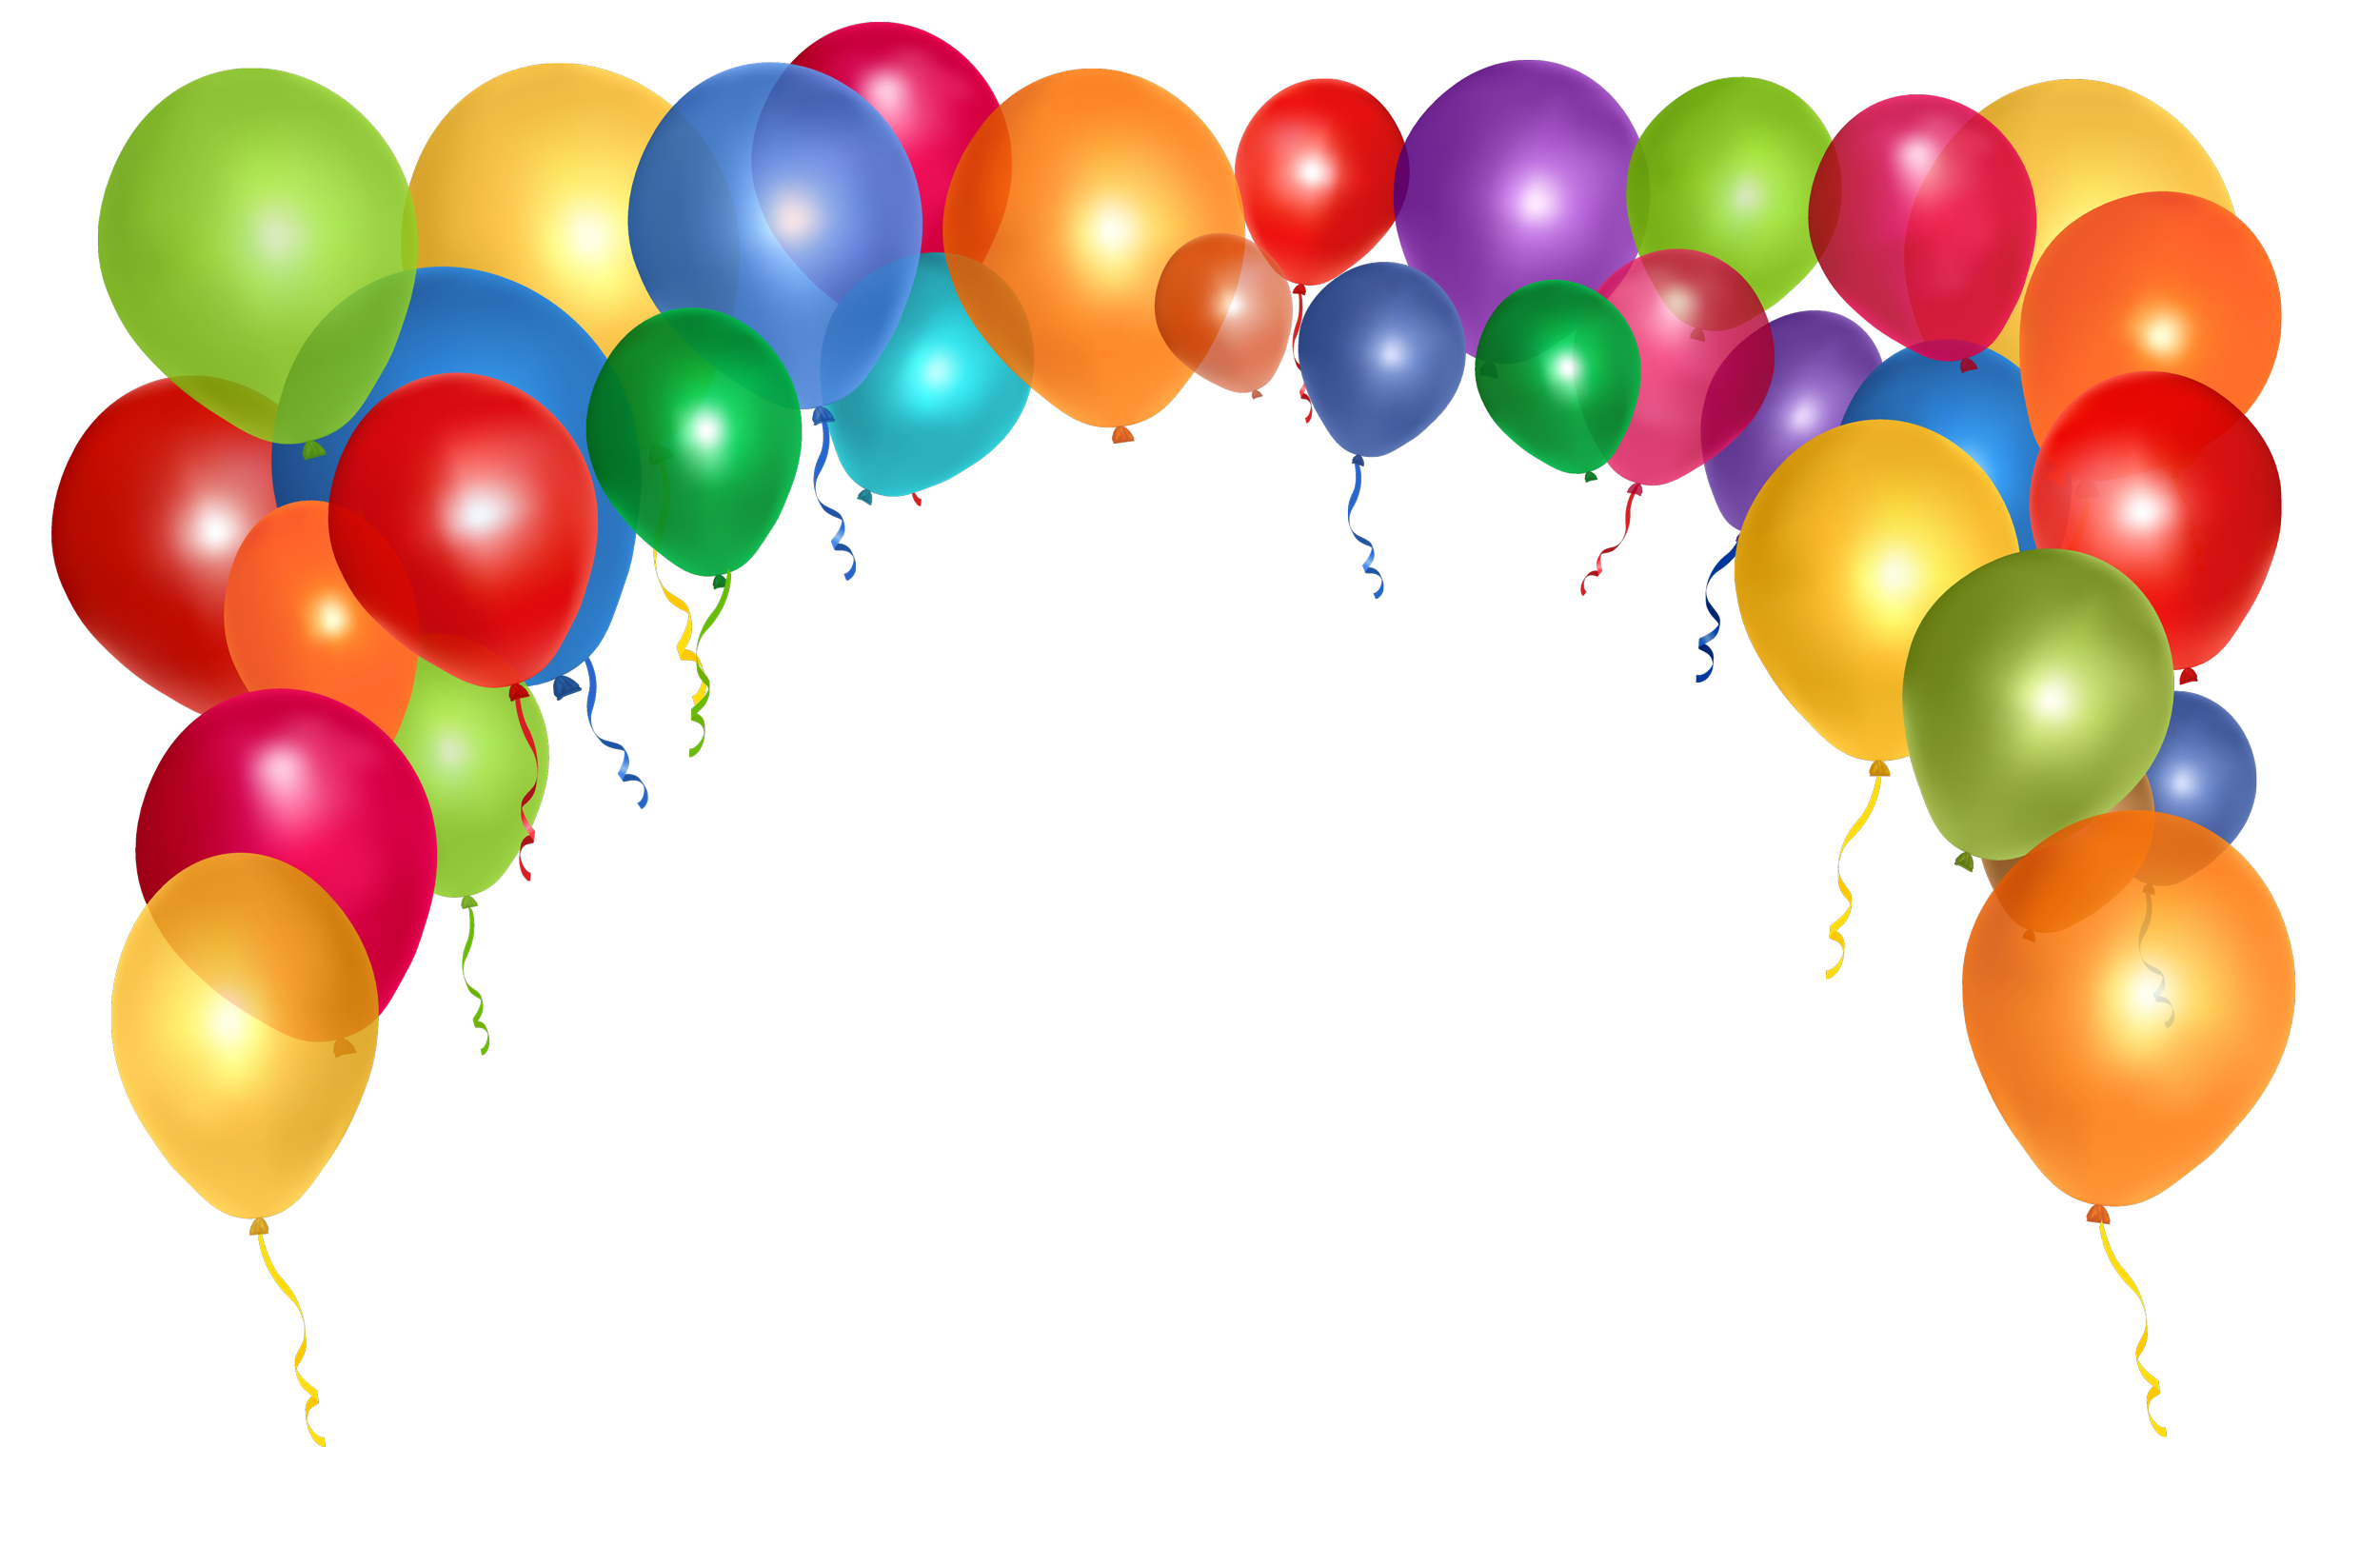 Balloons images free download. Balloon png transparent background svg transparent